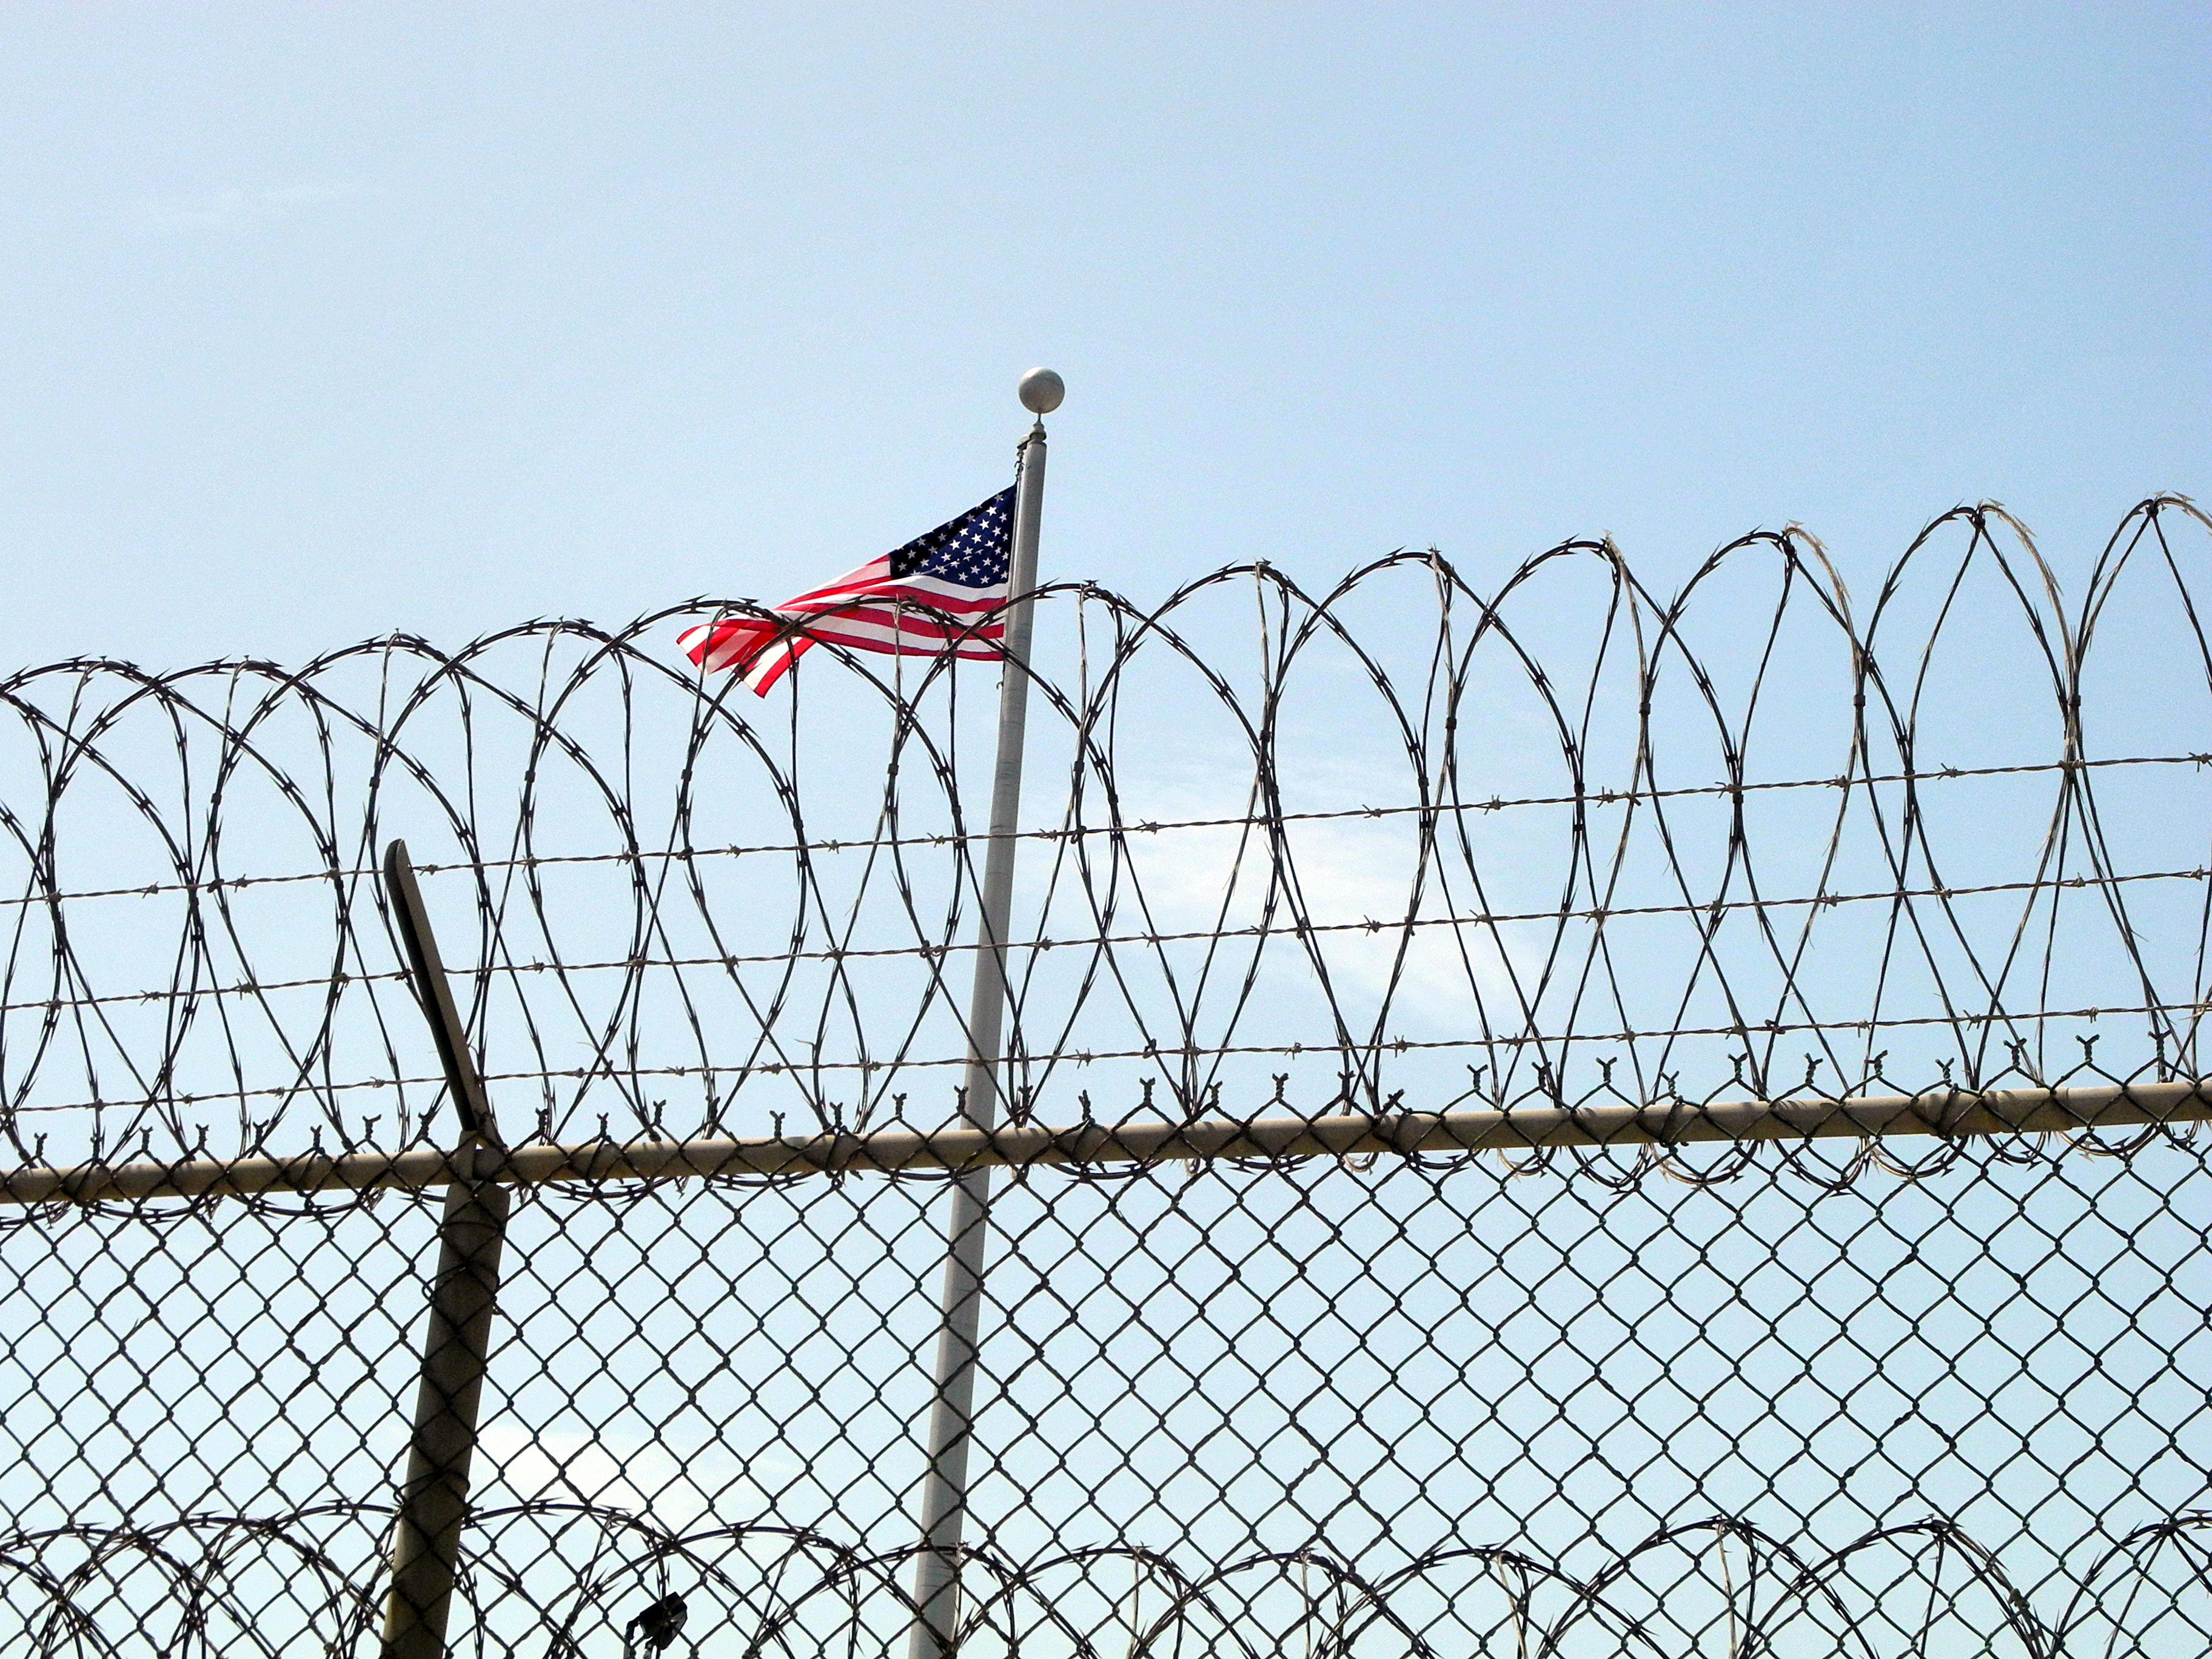 The US flag at the US Naval Base in Guantanamo Bay, Cuba on August 6, 2013.